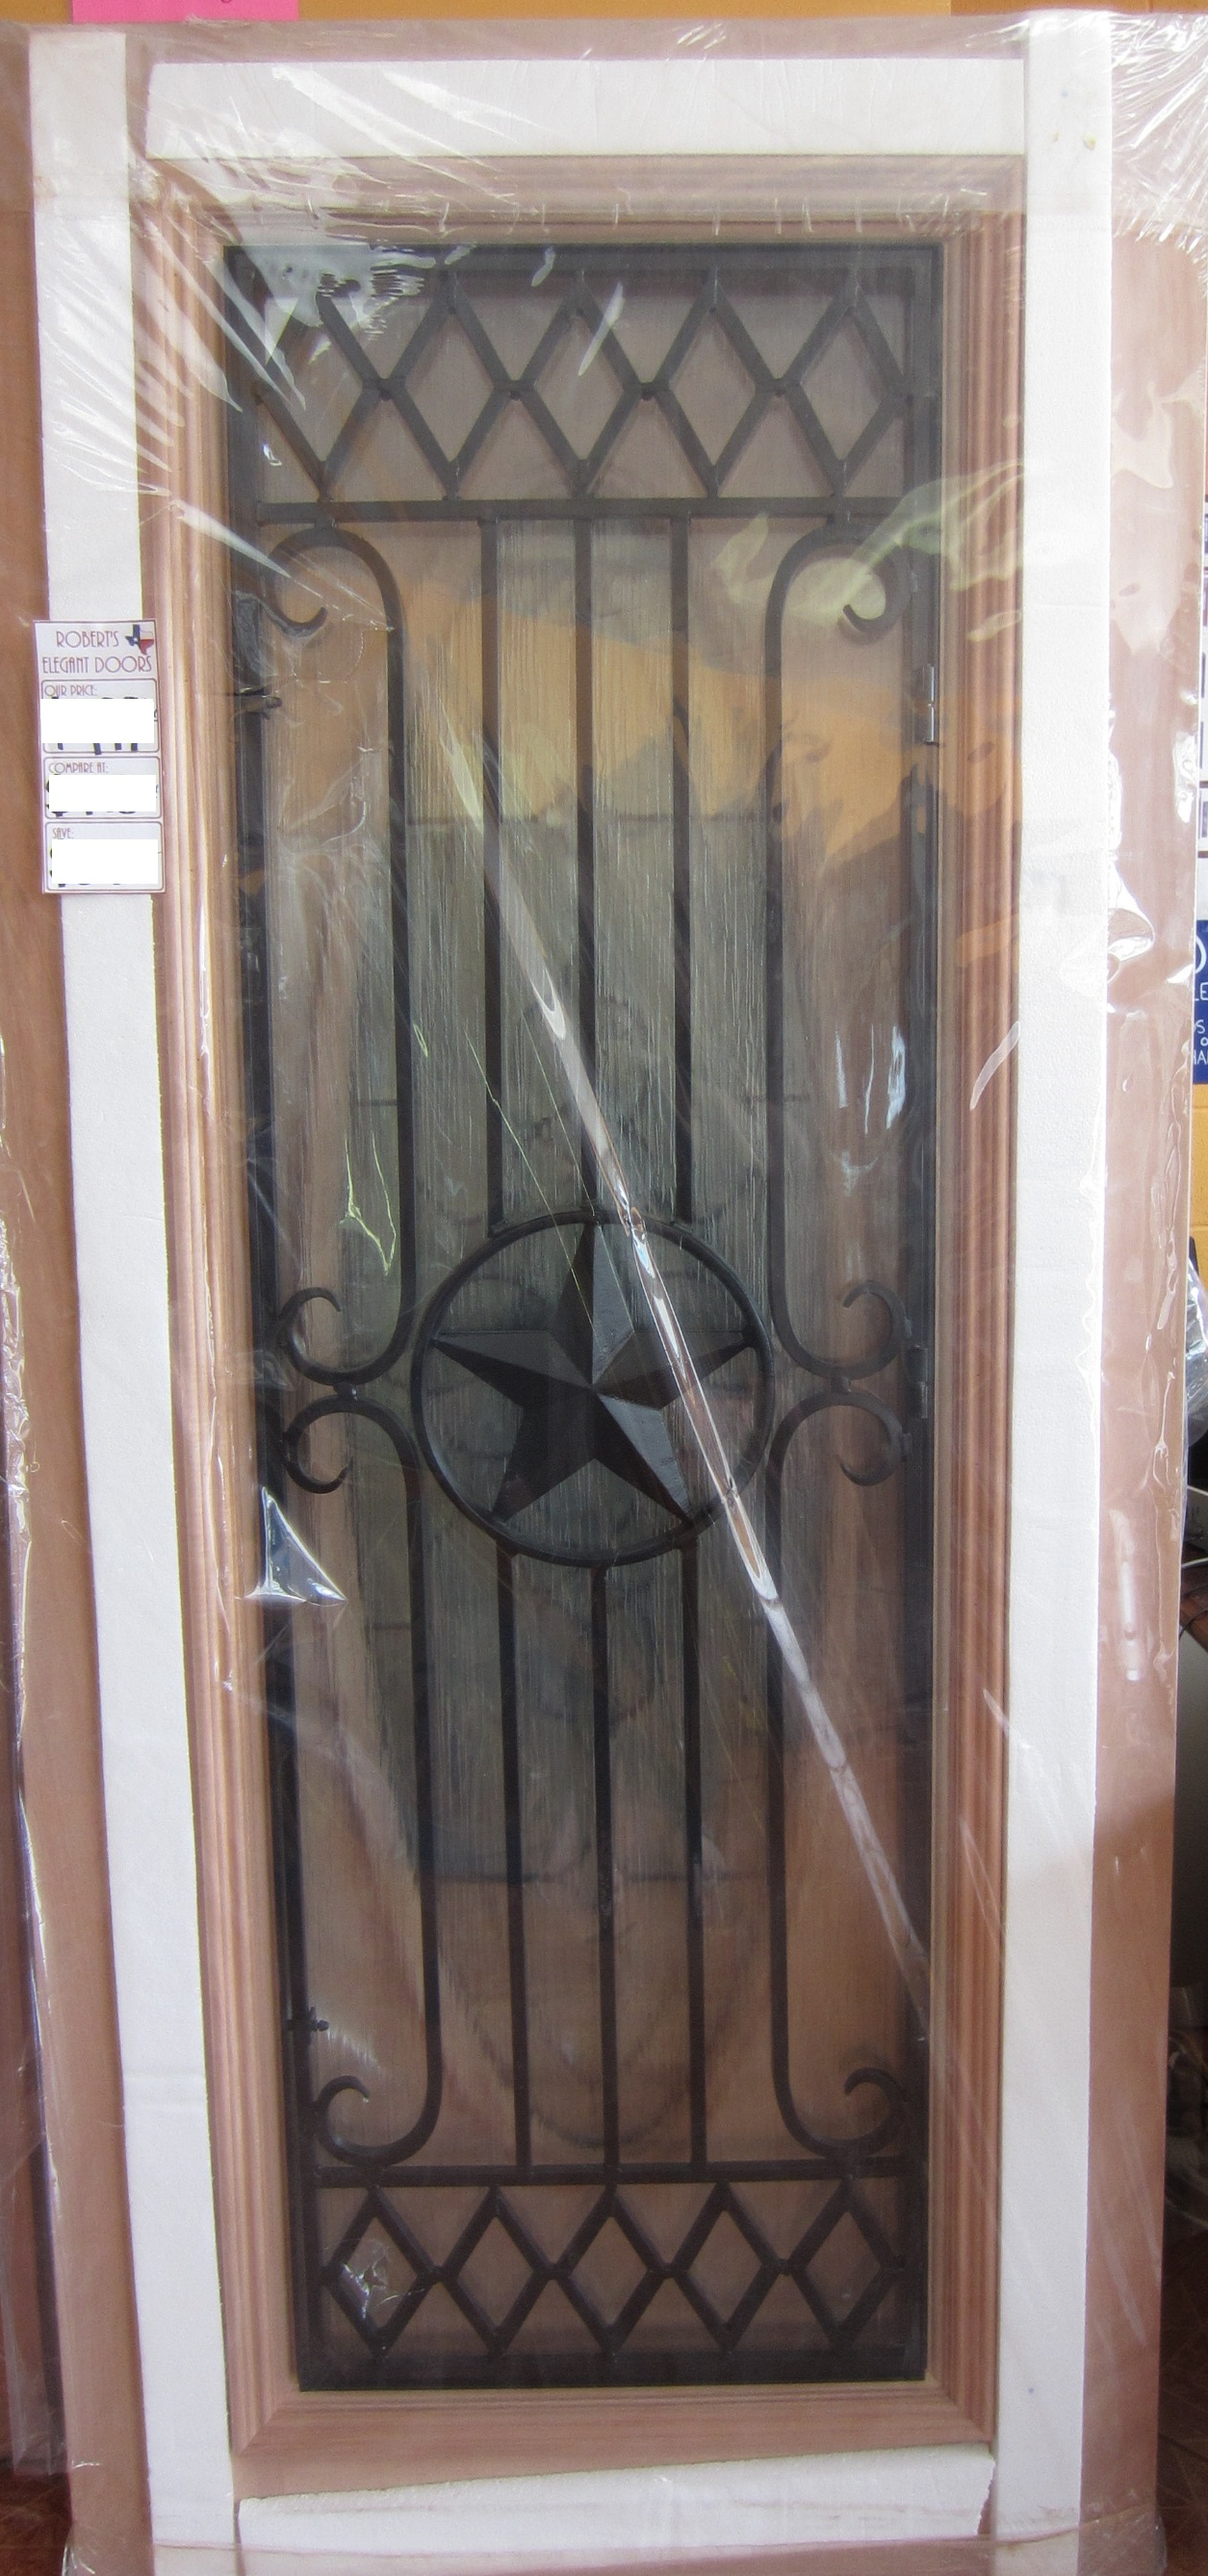 2676 #7F614C Doors Houston Doors Front Doors Houston   Doors Wood  image Wooden Doors Houston 45731255